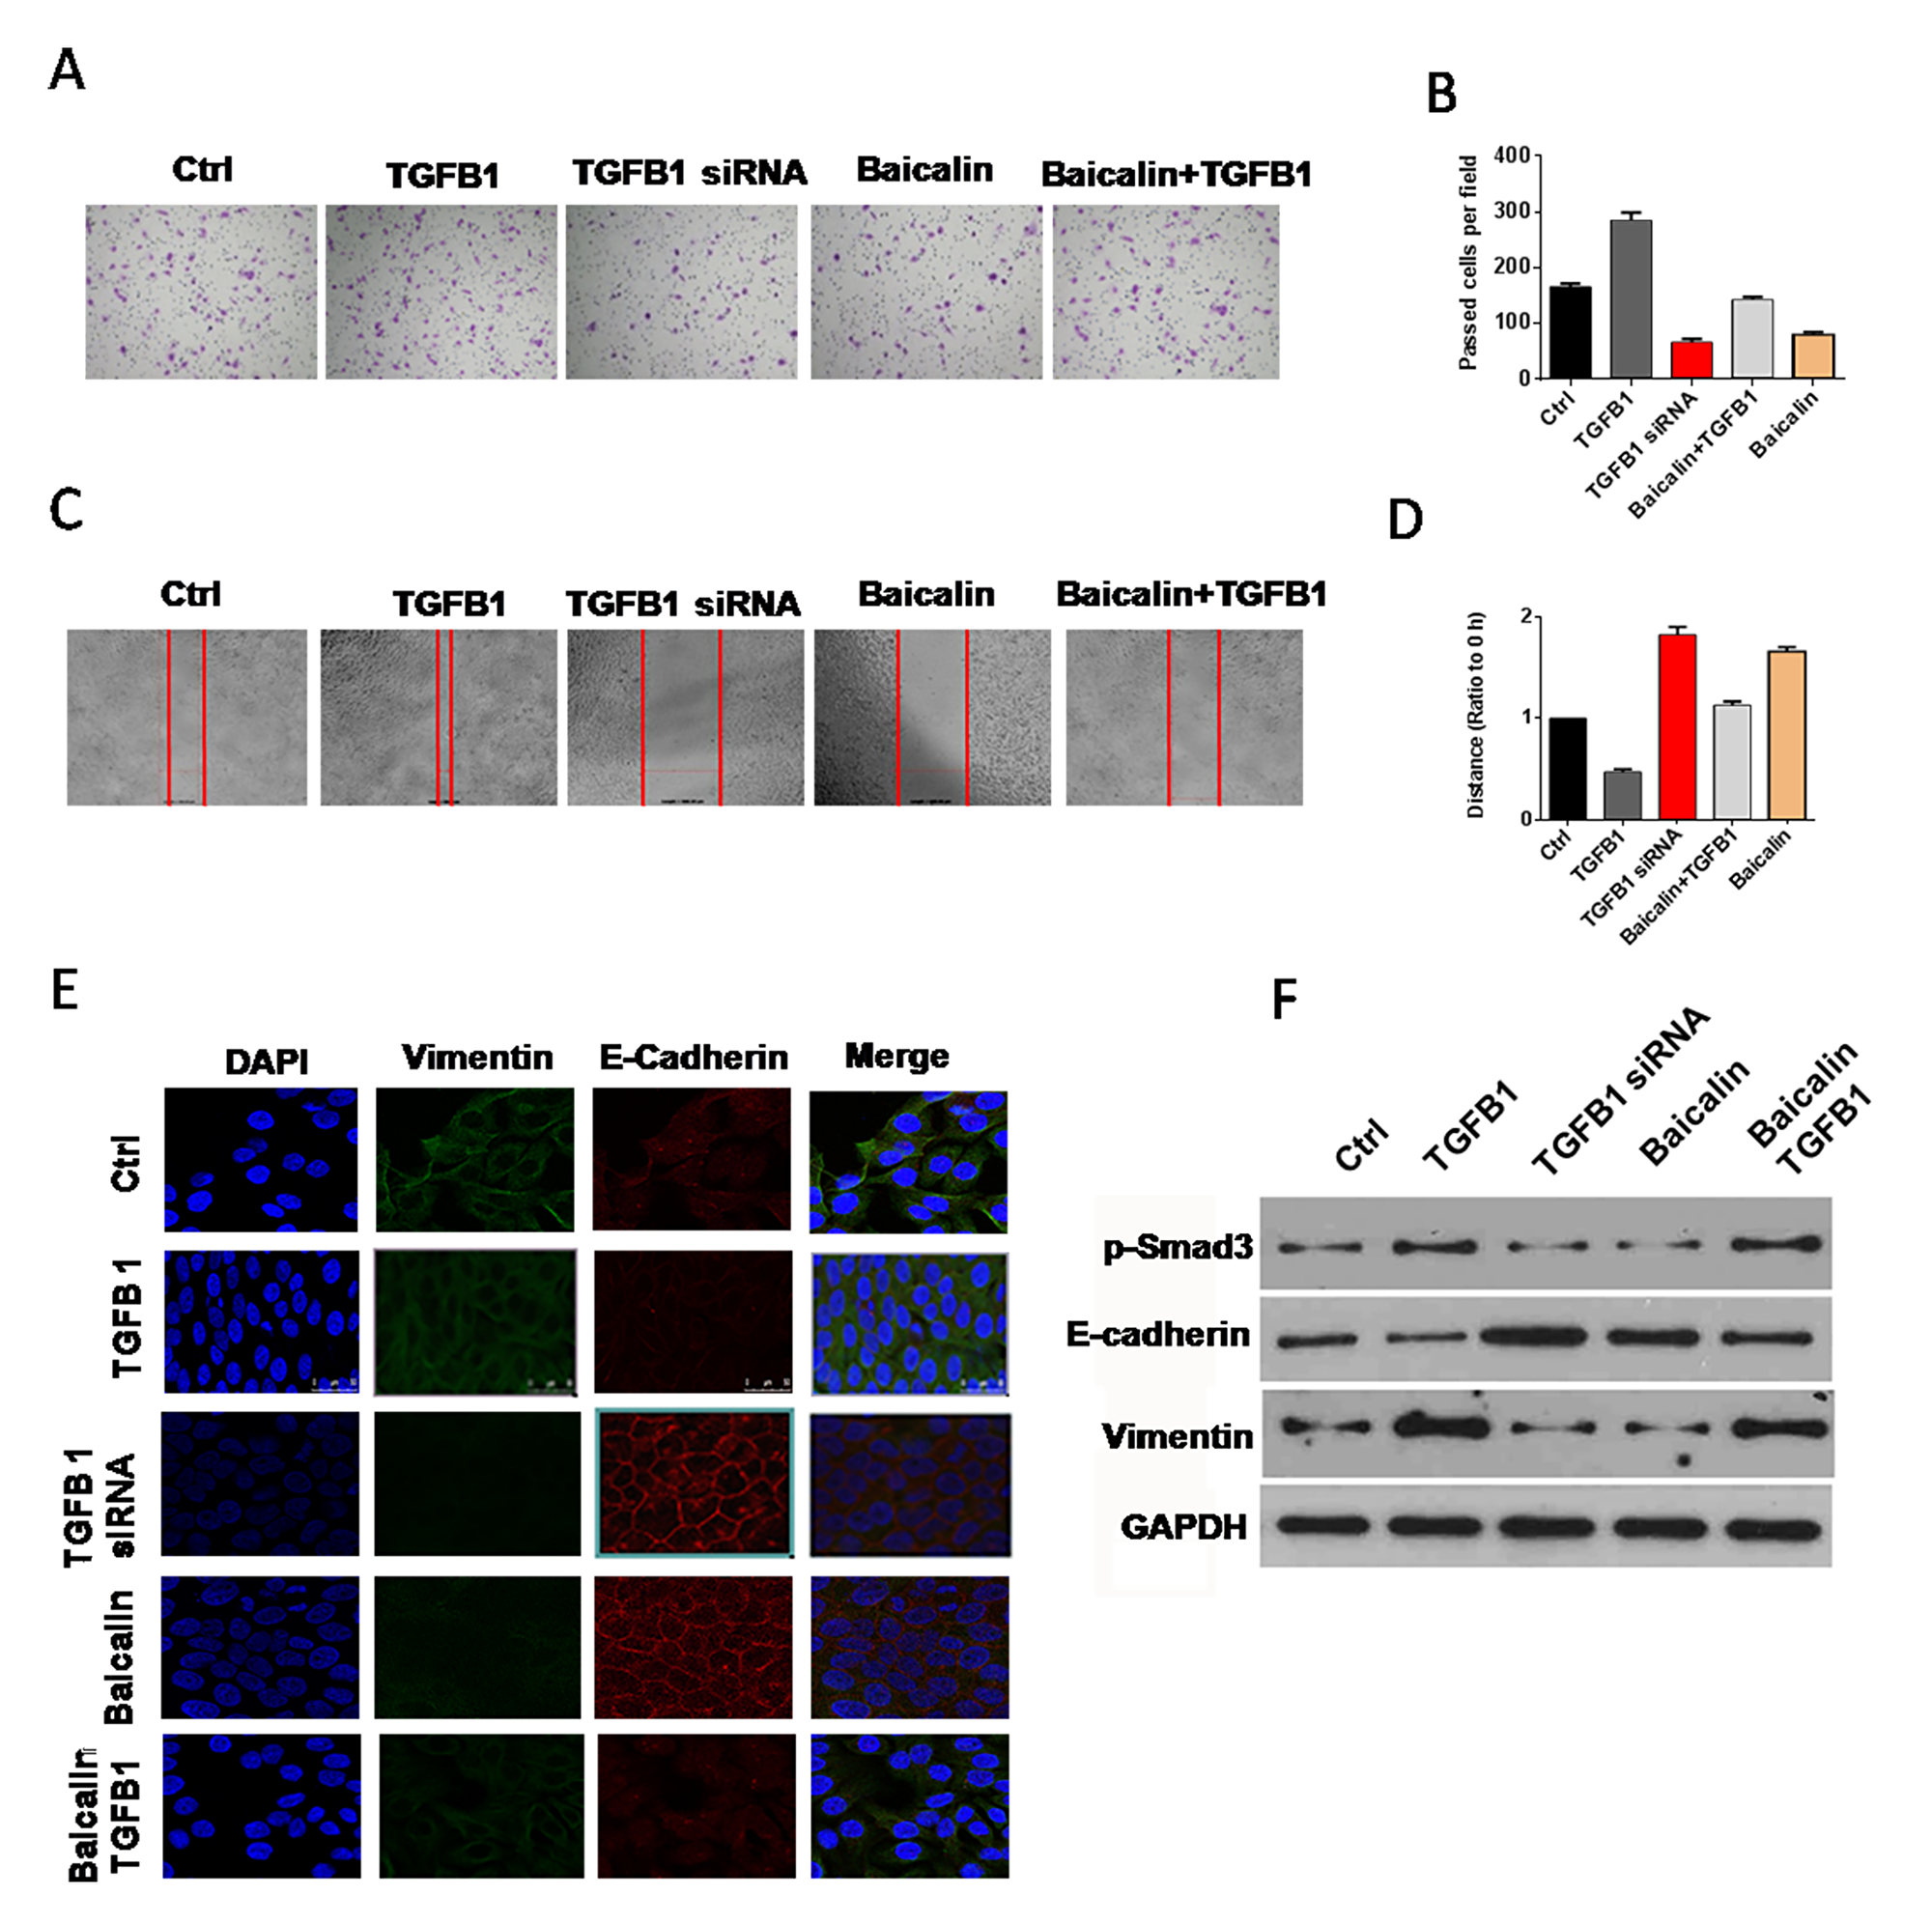 Baicalin counteracted the effect of TGF-β1 on EMT.